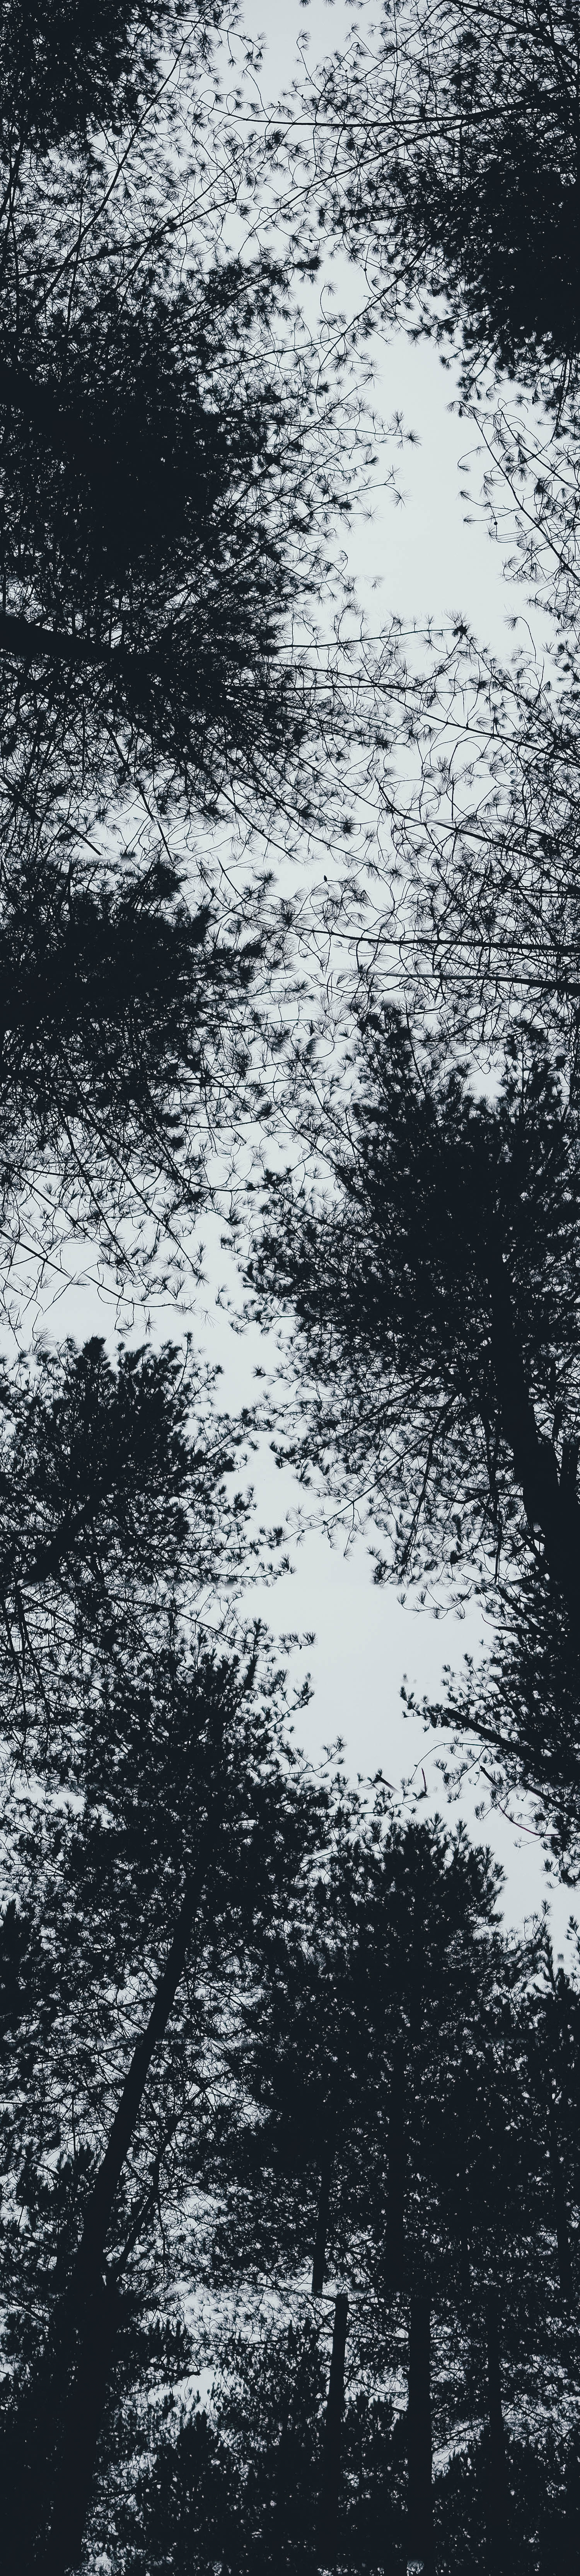 Forest trees from beneath